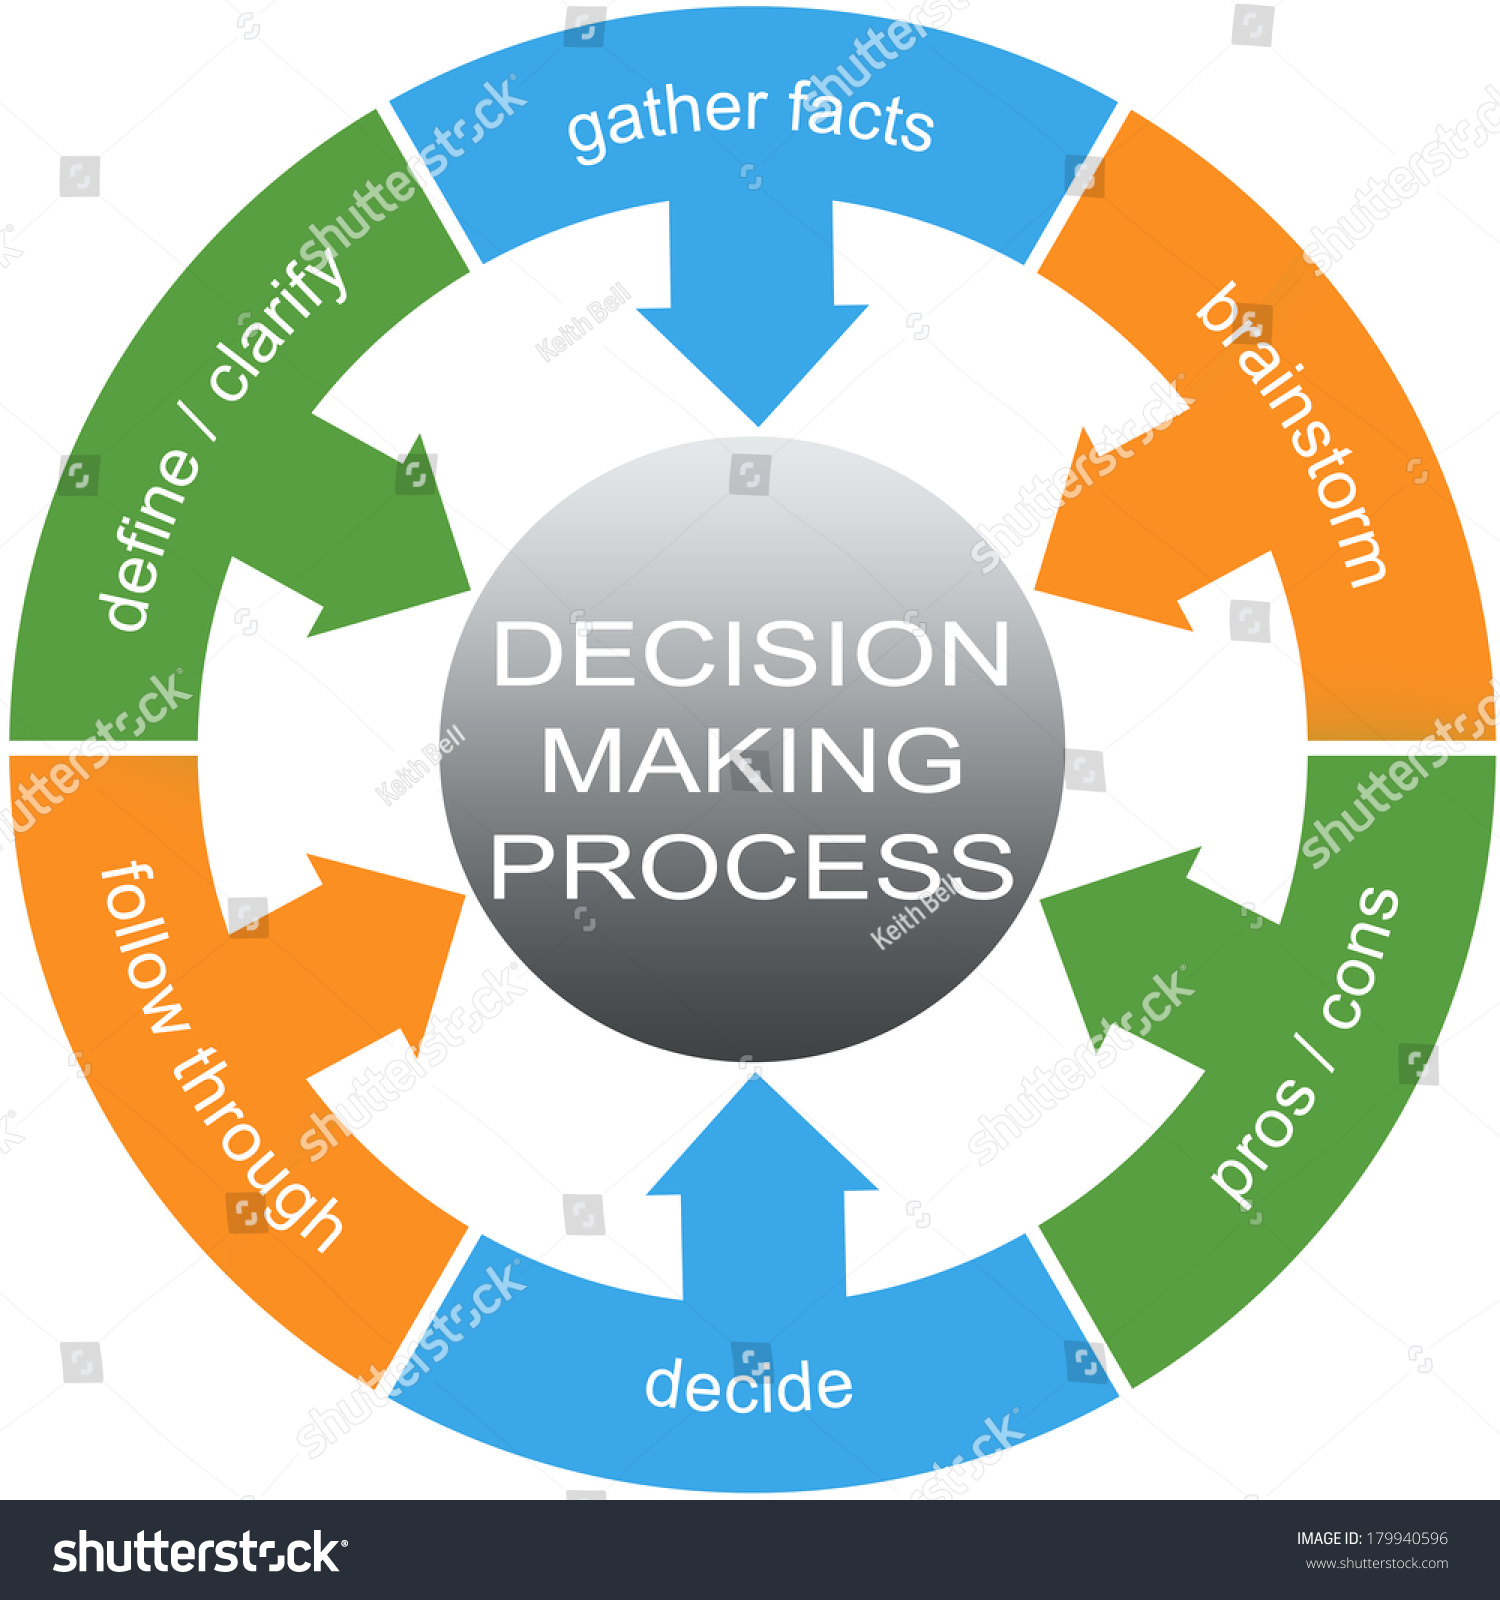 the decision making process regarding plans for the future We'll examine how well you structure your decision-making process 12 before i communicate my decision, i create an implementation plan.